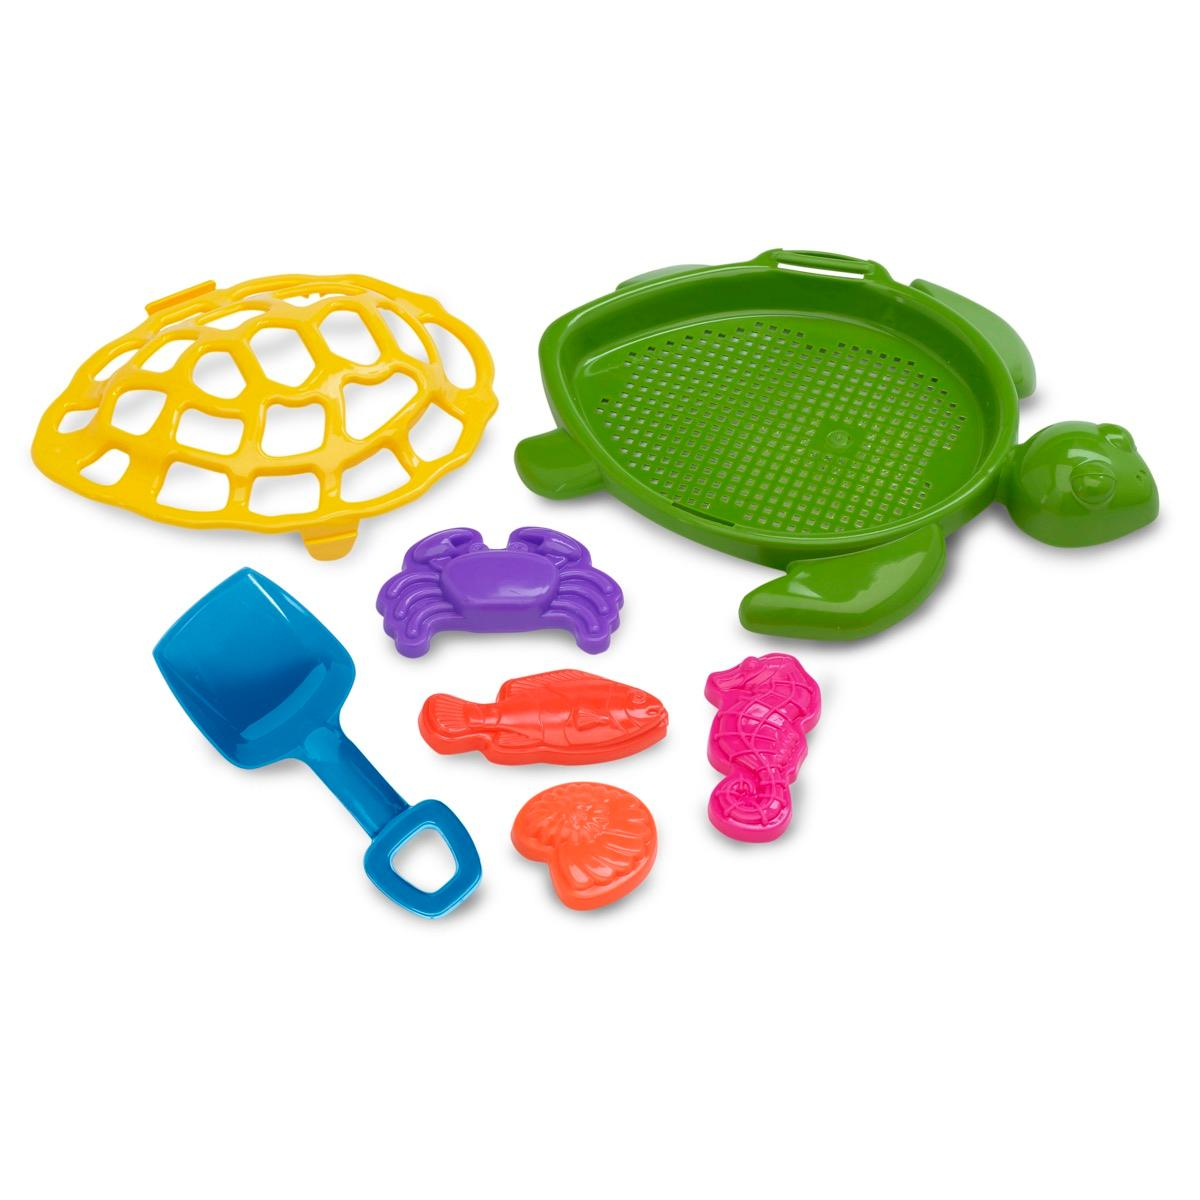 6 Piece Turtle Of Toys